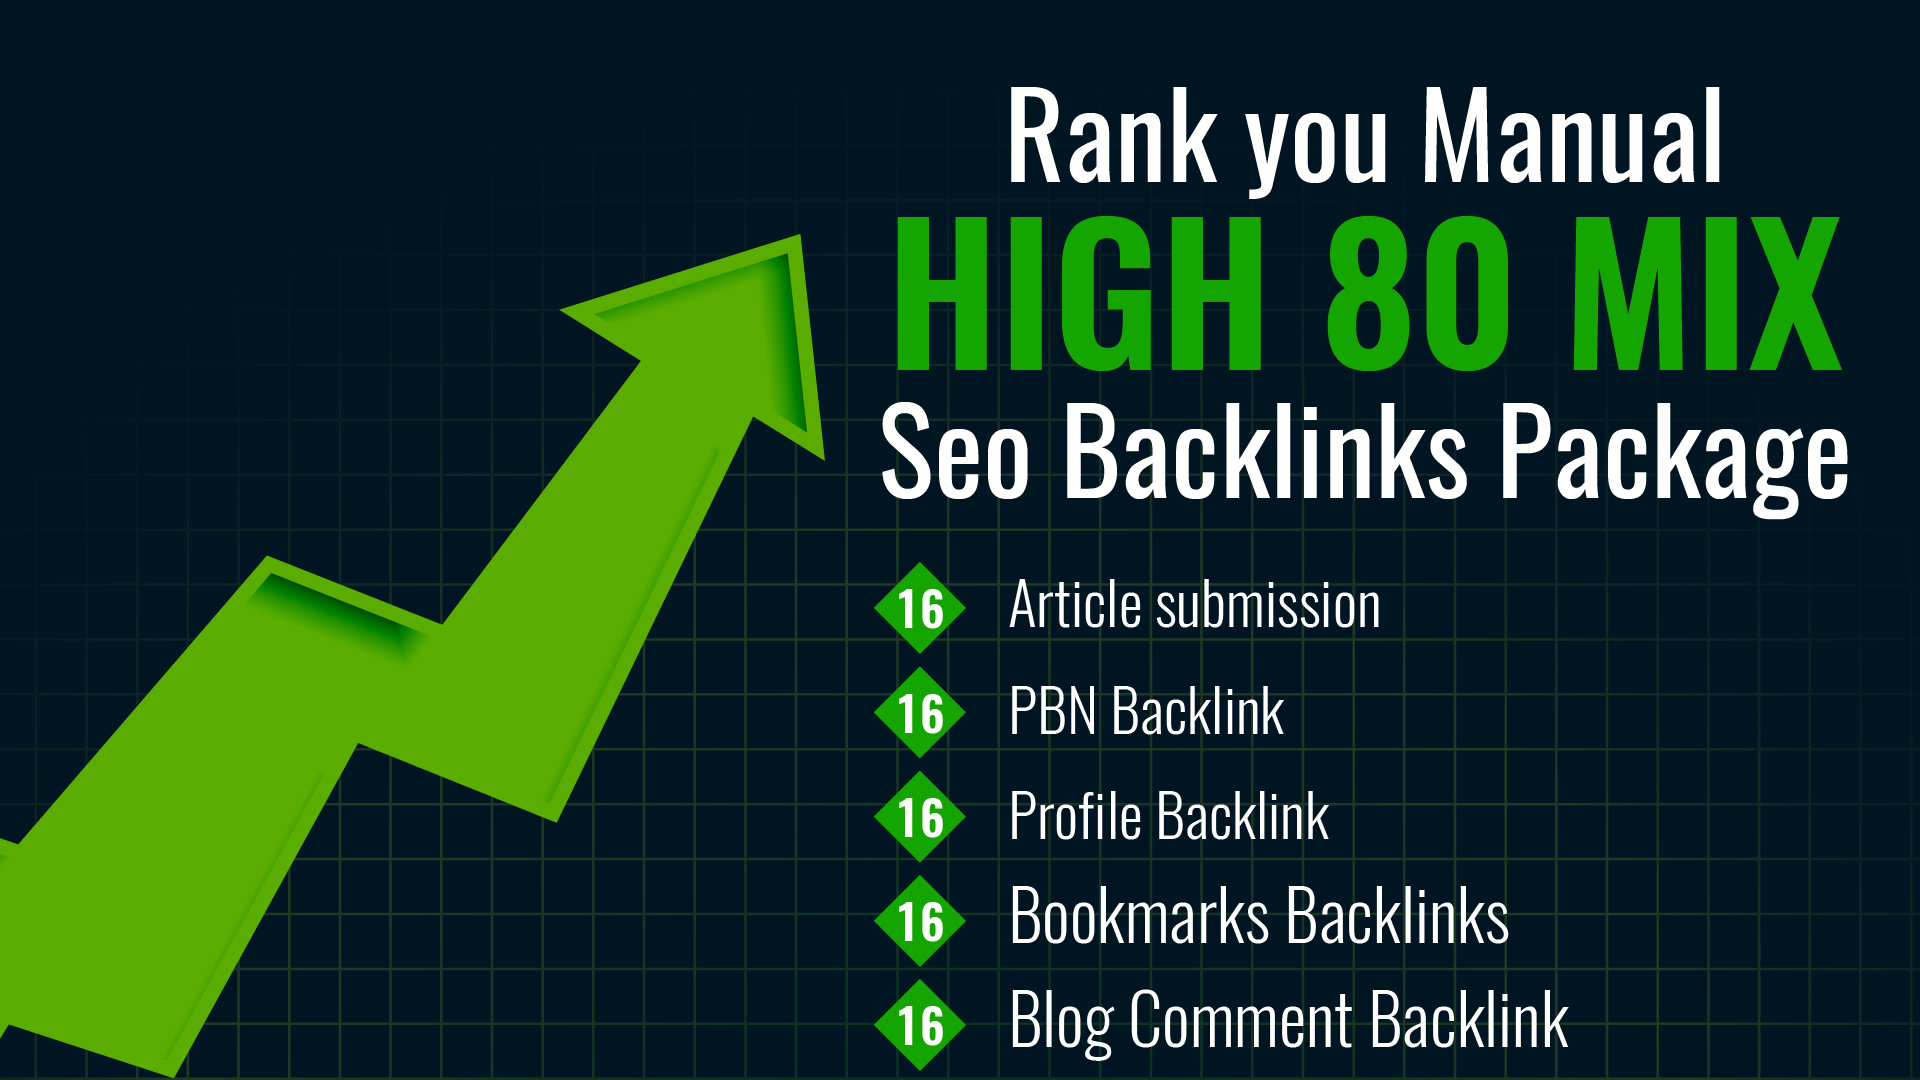 I will Rank you Manual high 80 Mix Seo Backlinks Package